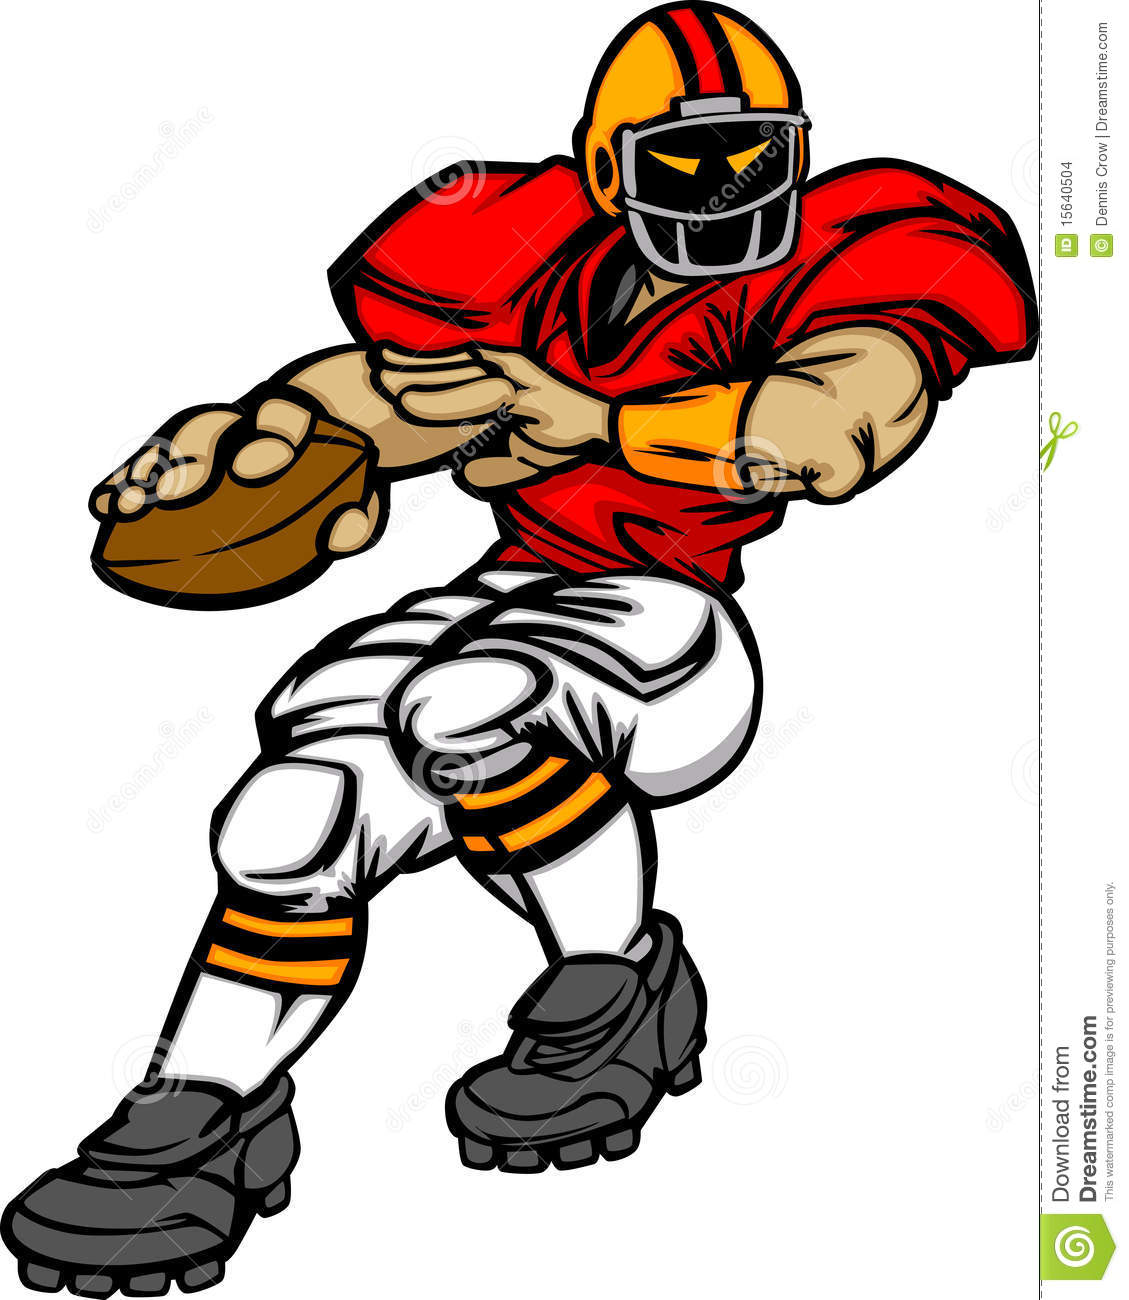 Football player images